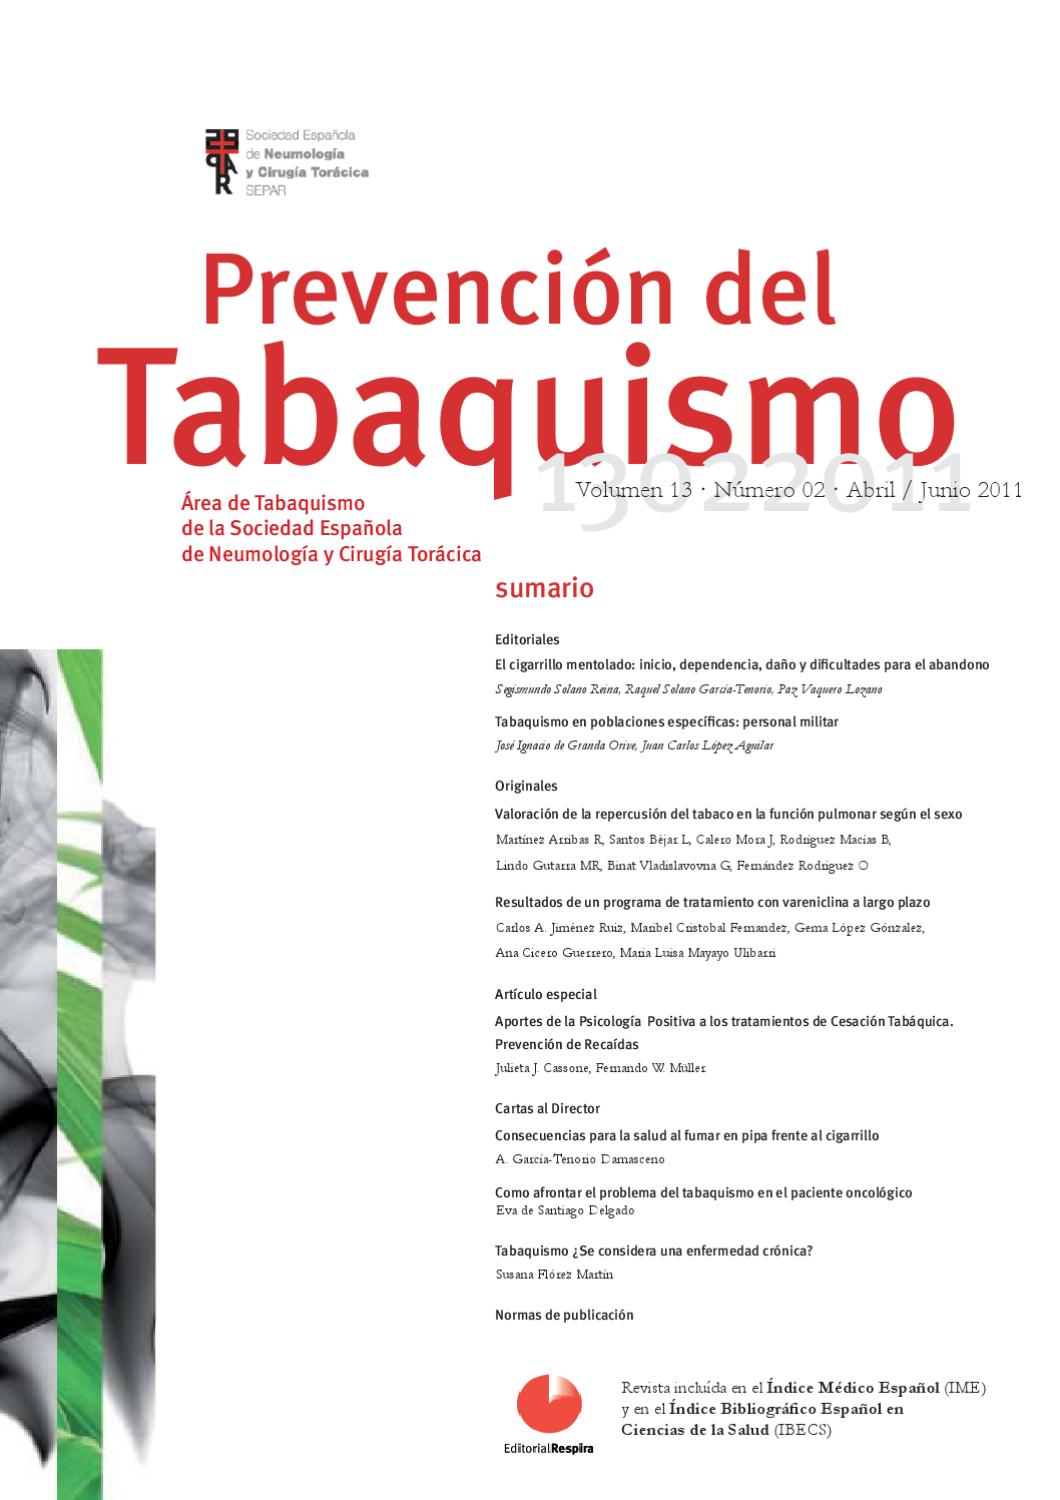 Prevención del Tabaquismo. v13, n2, Abril/Junio 2011. by SEPAR - issuu